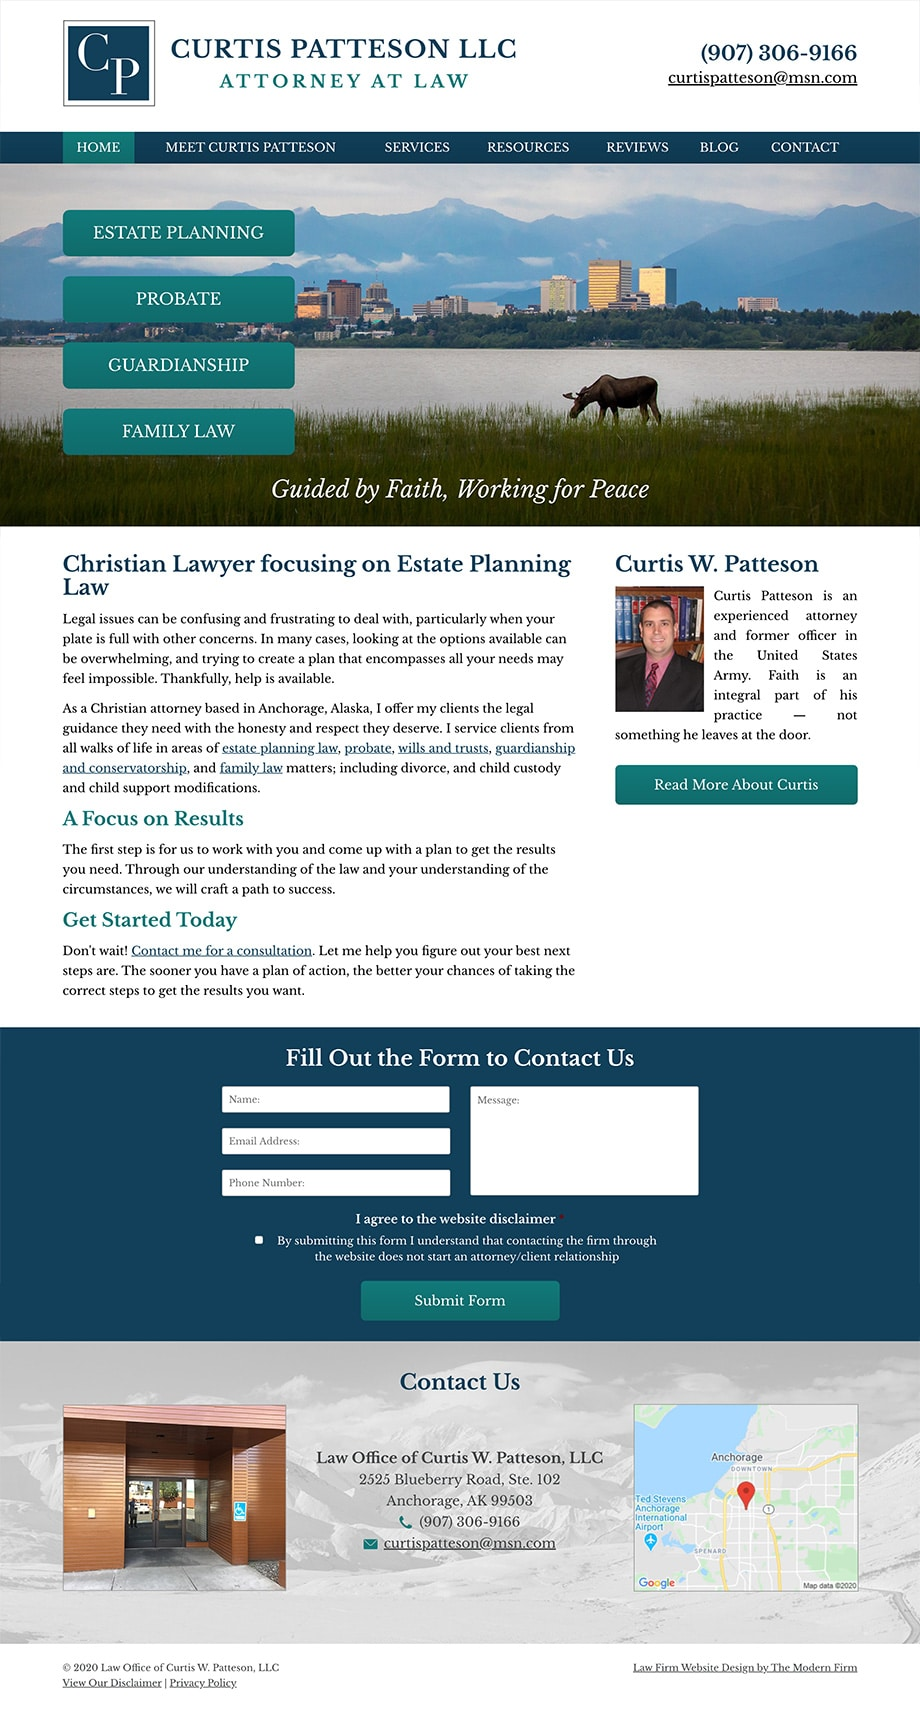 Law Firm Website Design for Law Office of Curtis W. Patteson, LLC